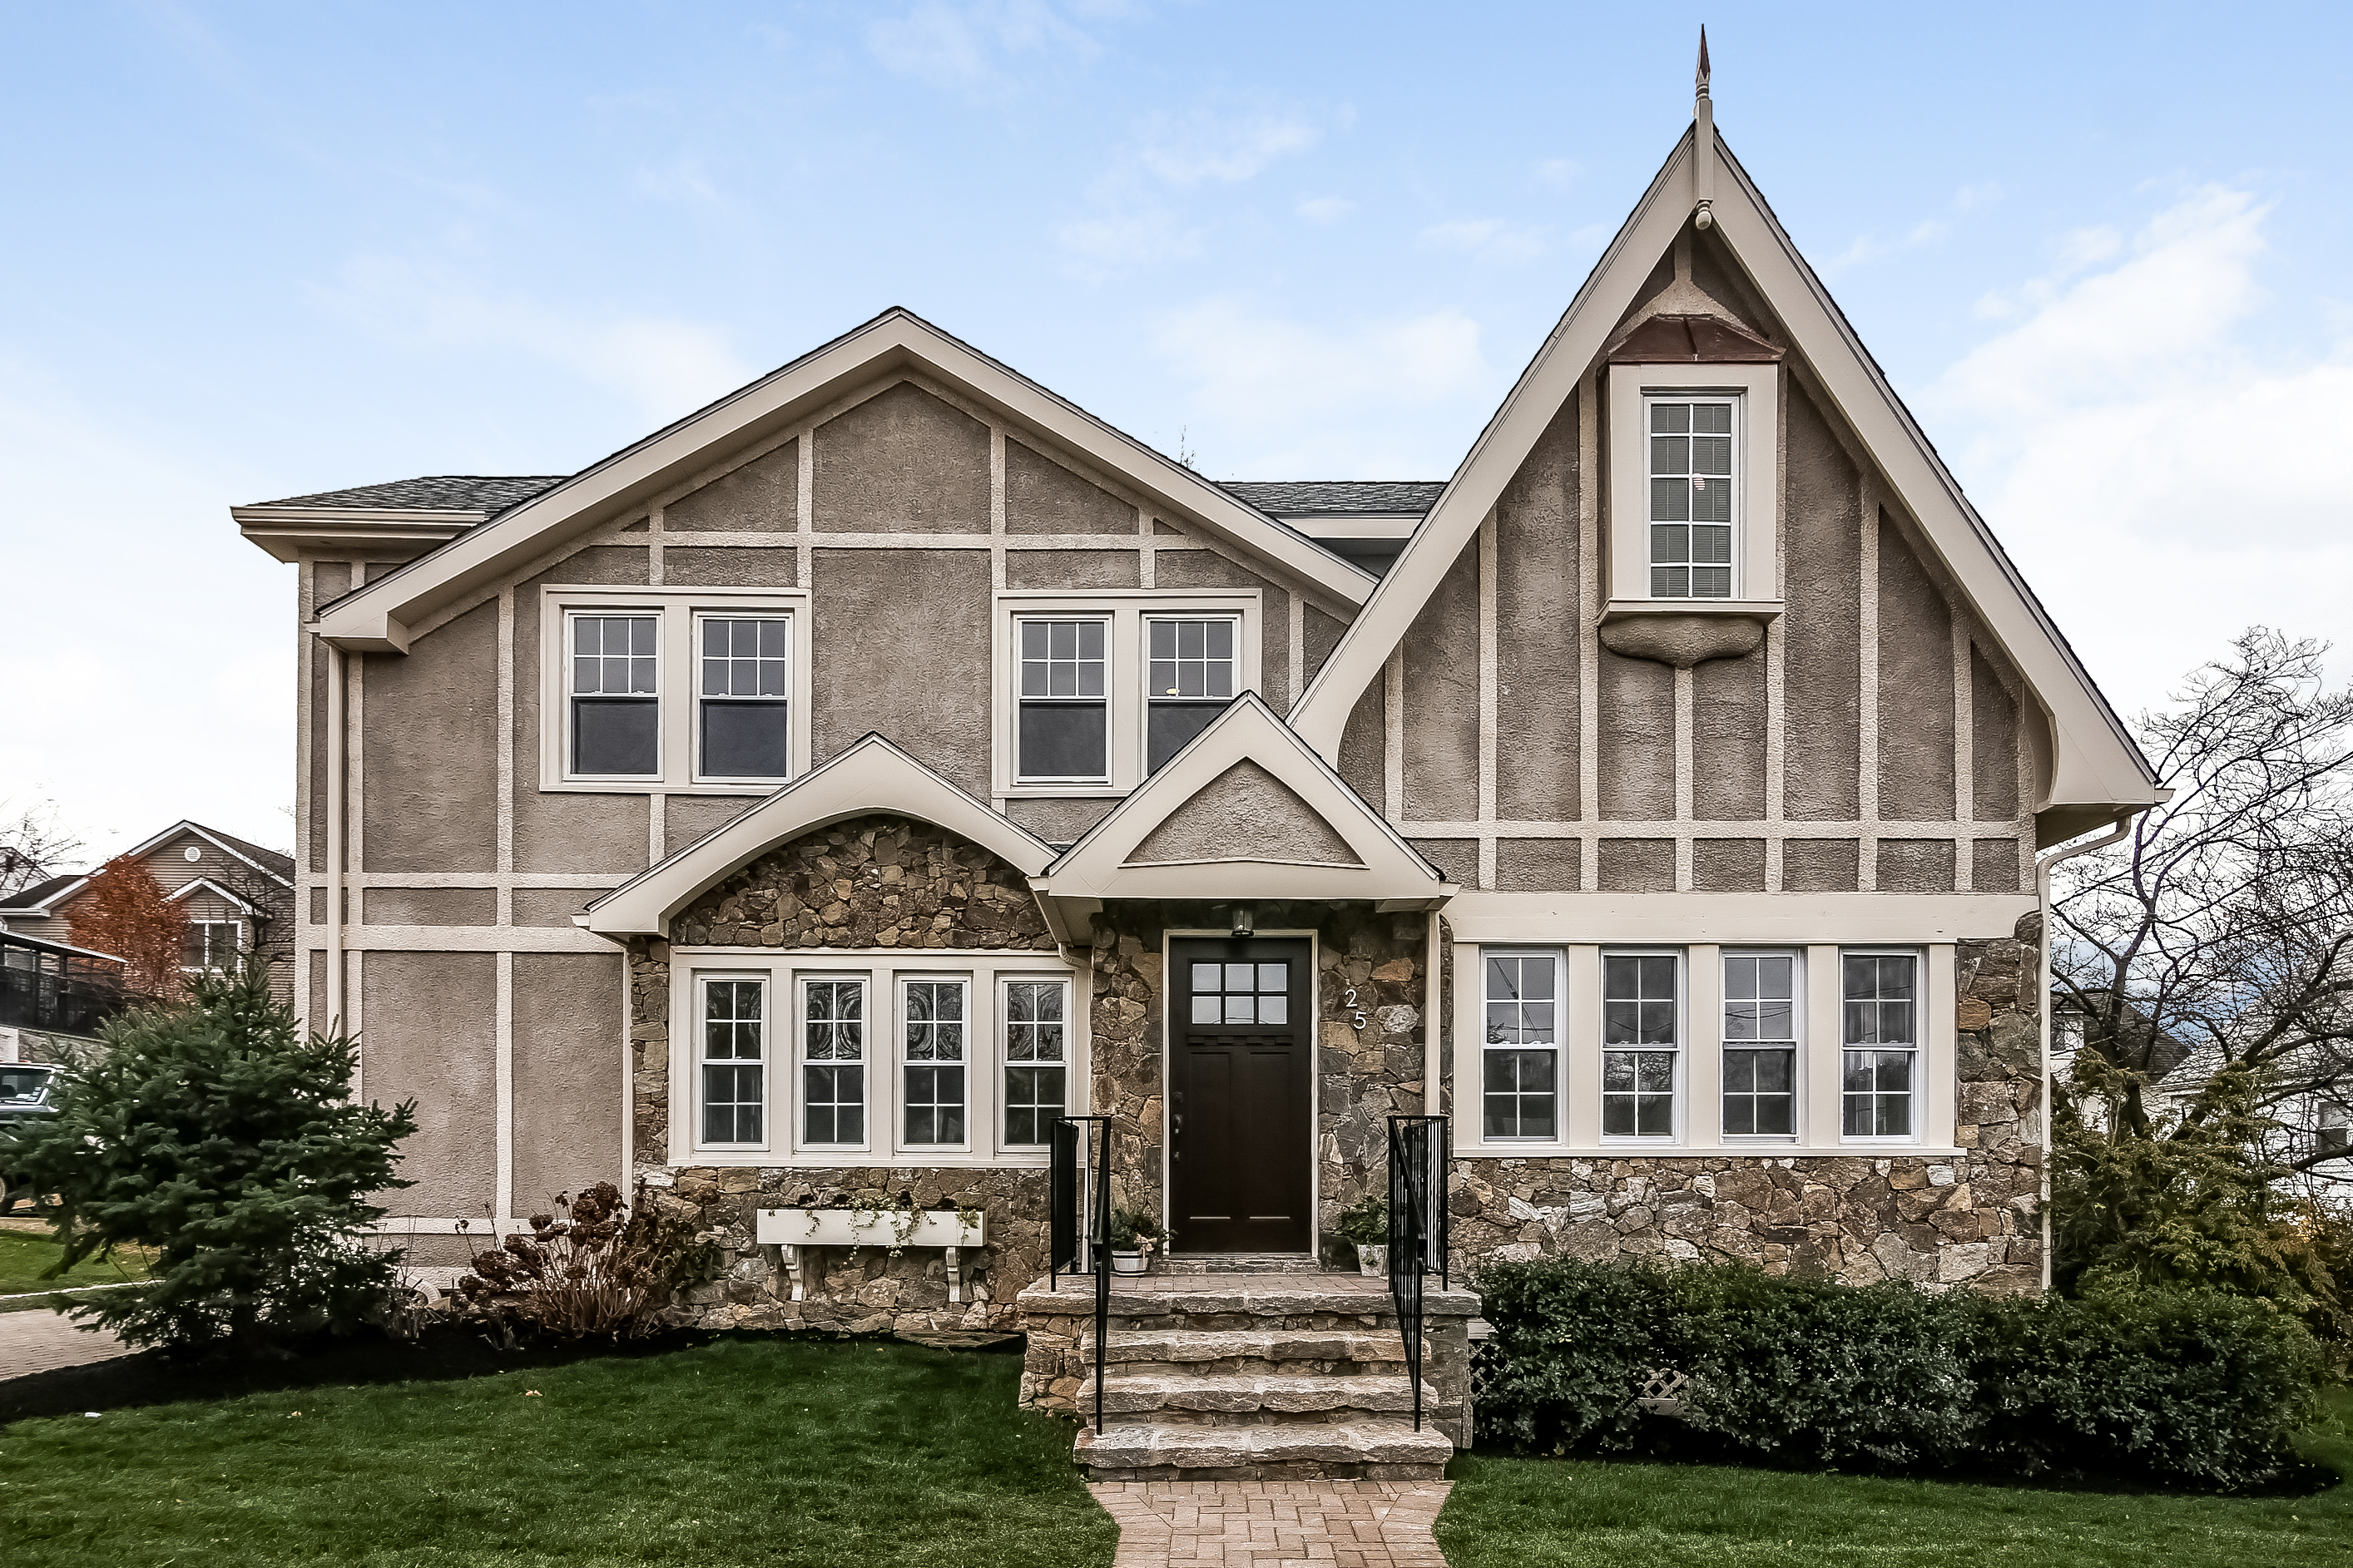 Property For Sale at Armour Villa Tudor